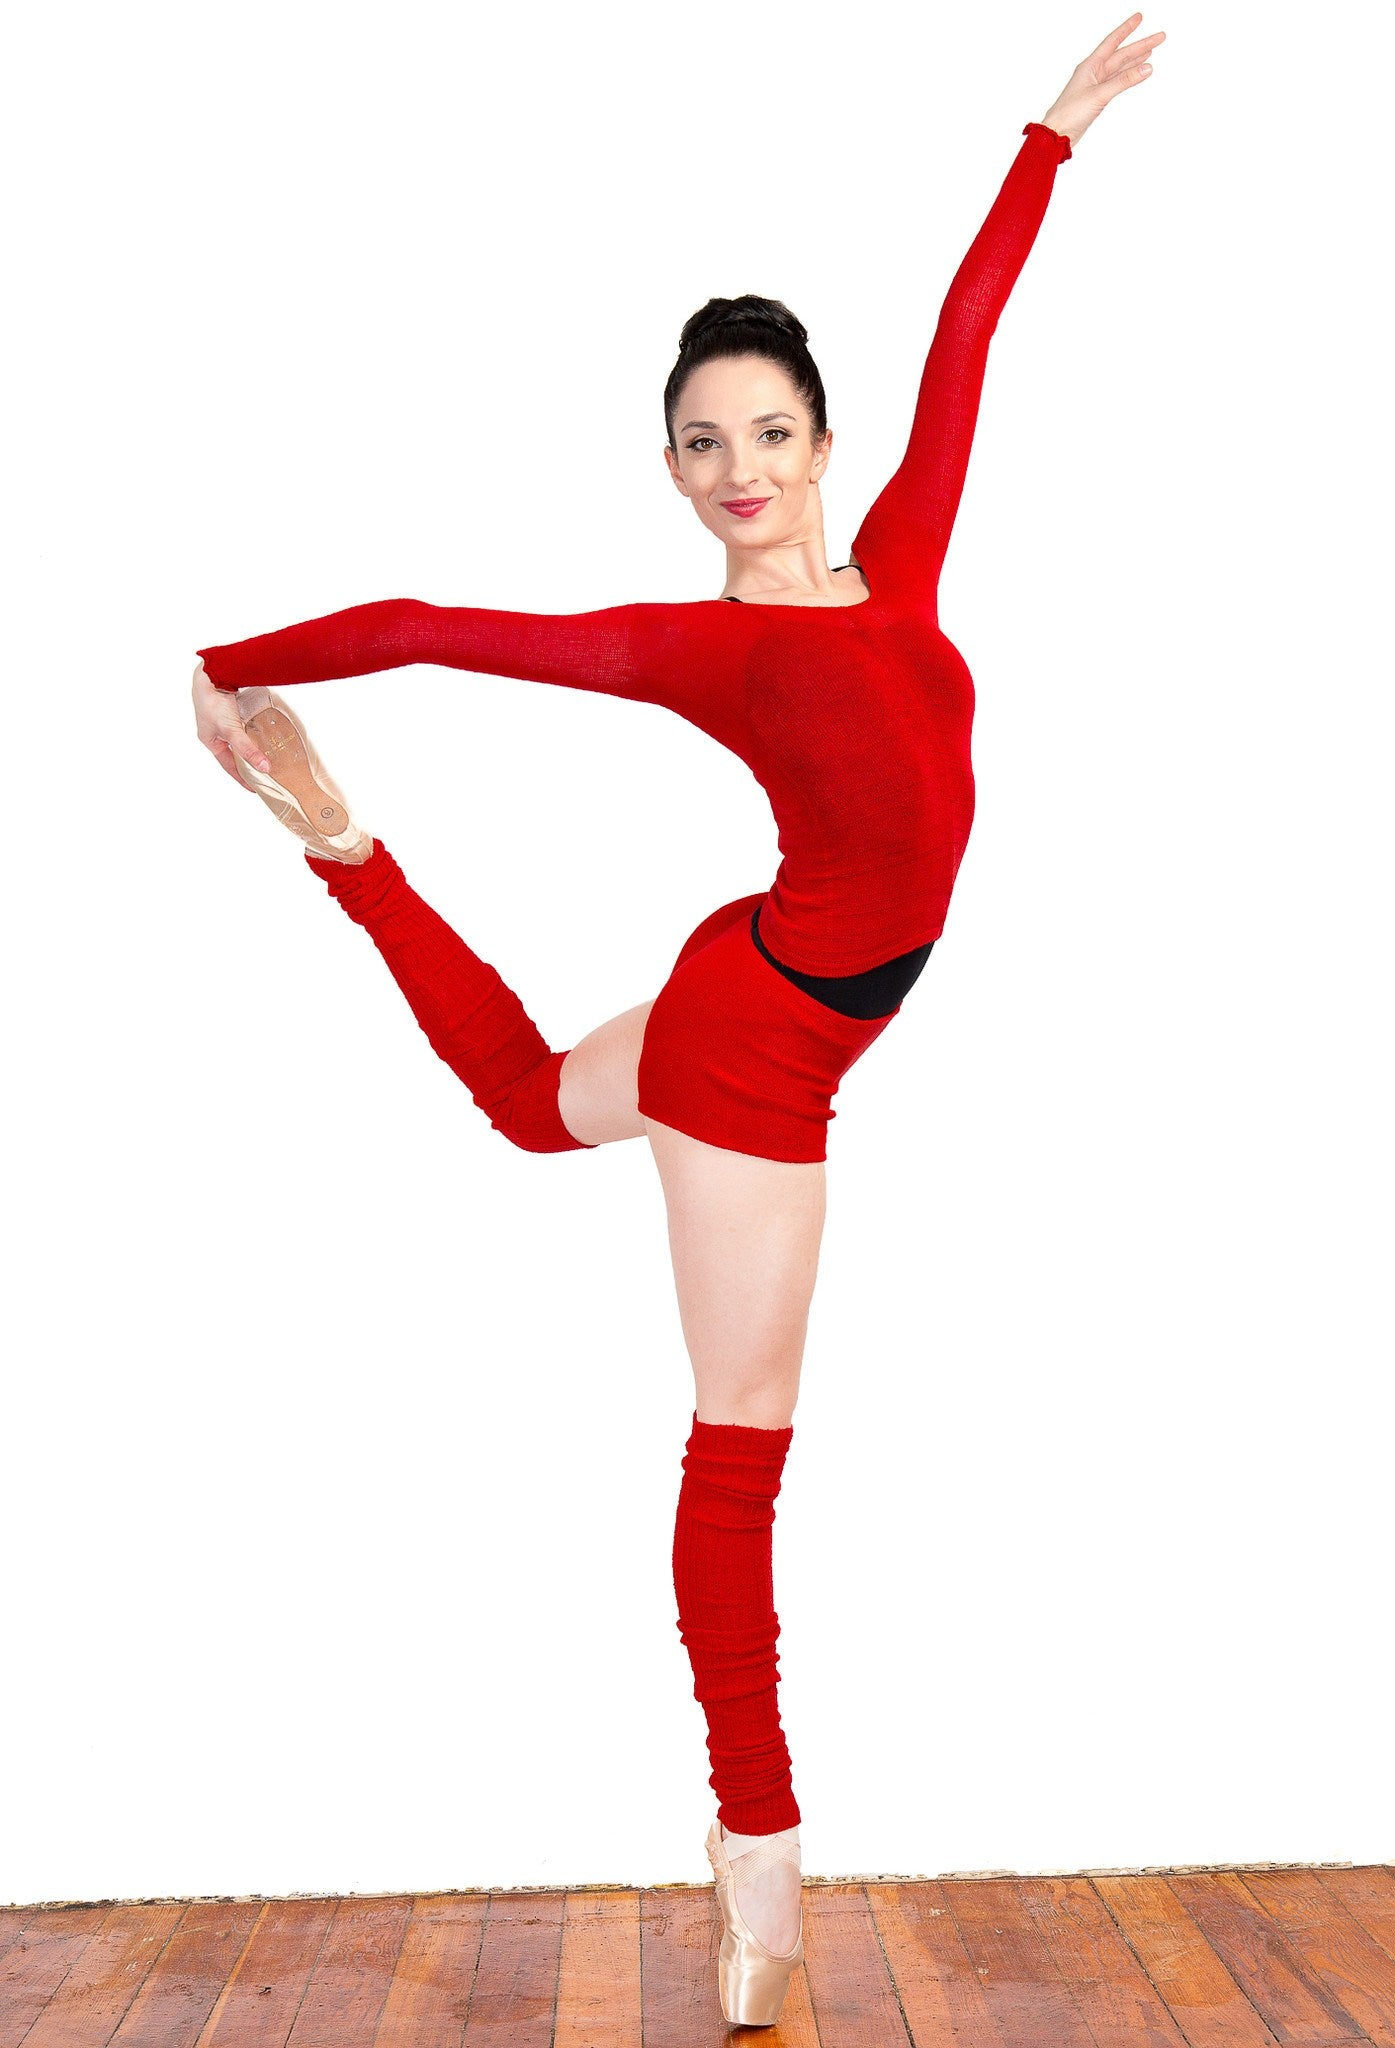 Leg Warmers: Knee High KrinkleSpun Soft Subtle Shine Legwarmers by KD dance New York Made In USA @KDdanceNewYork #MadeInUSA - 5